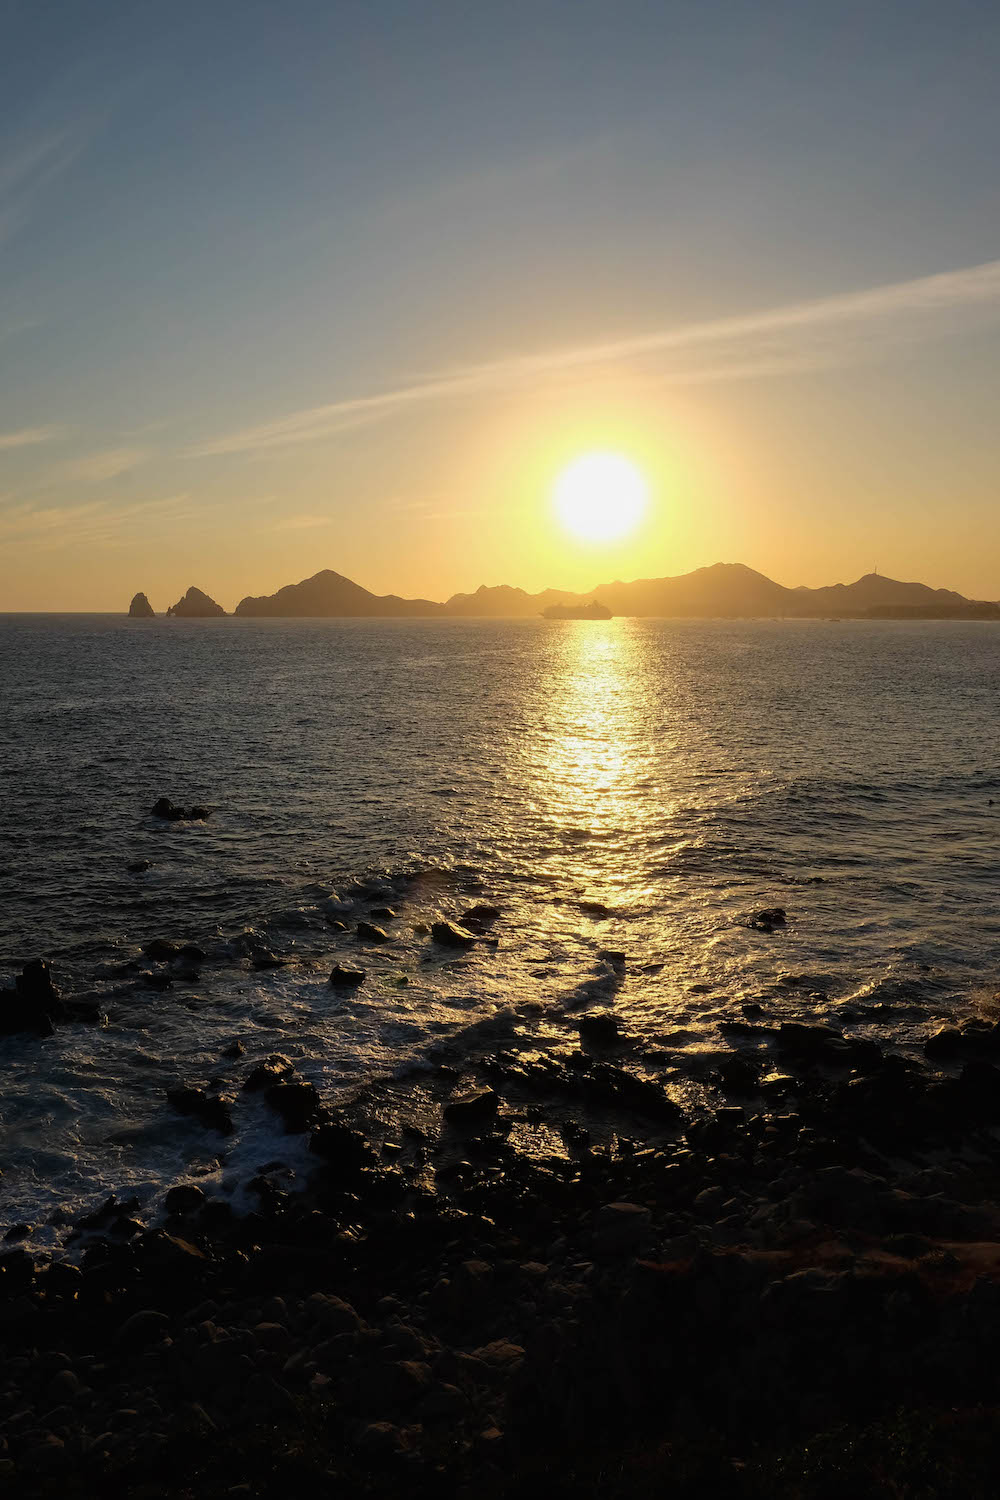 Sunset da Mona Lisa - Cabo | The Stripe Los Cabos Travel Diary - 2016 Los Cabos Film Festival